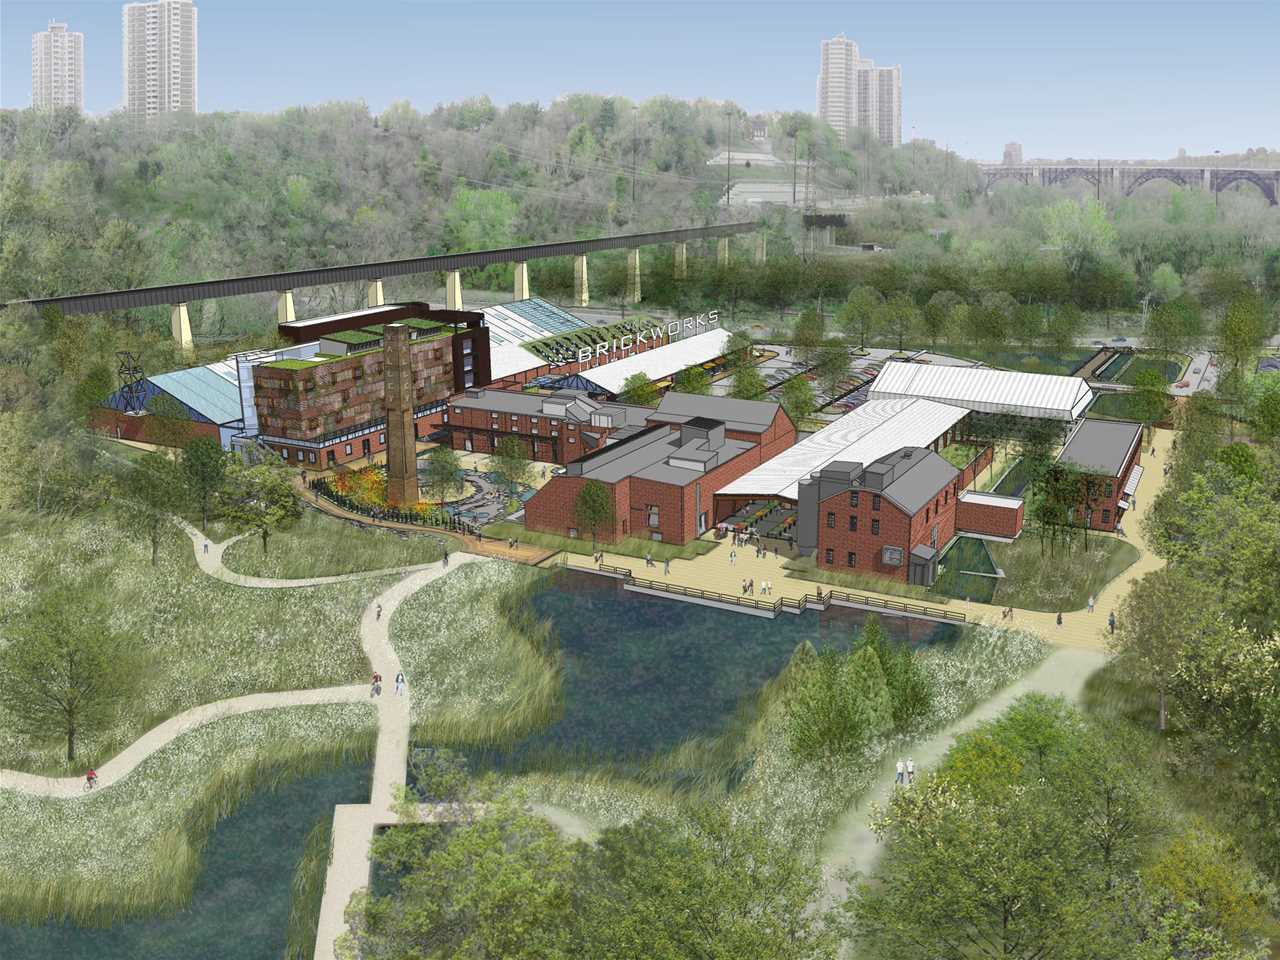 Project entry 2008 North America – Evergreen Brick Works heritage site revitalization, …